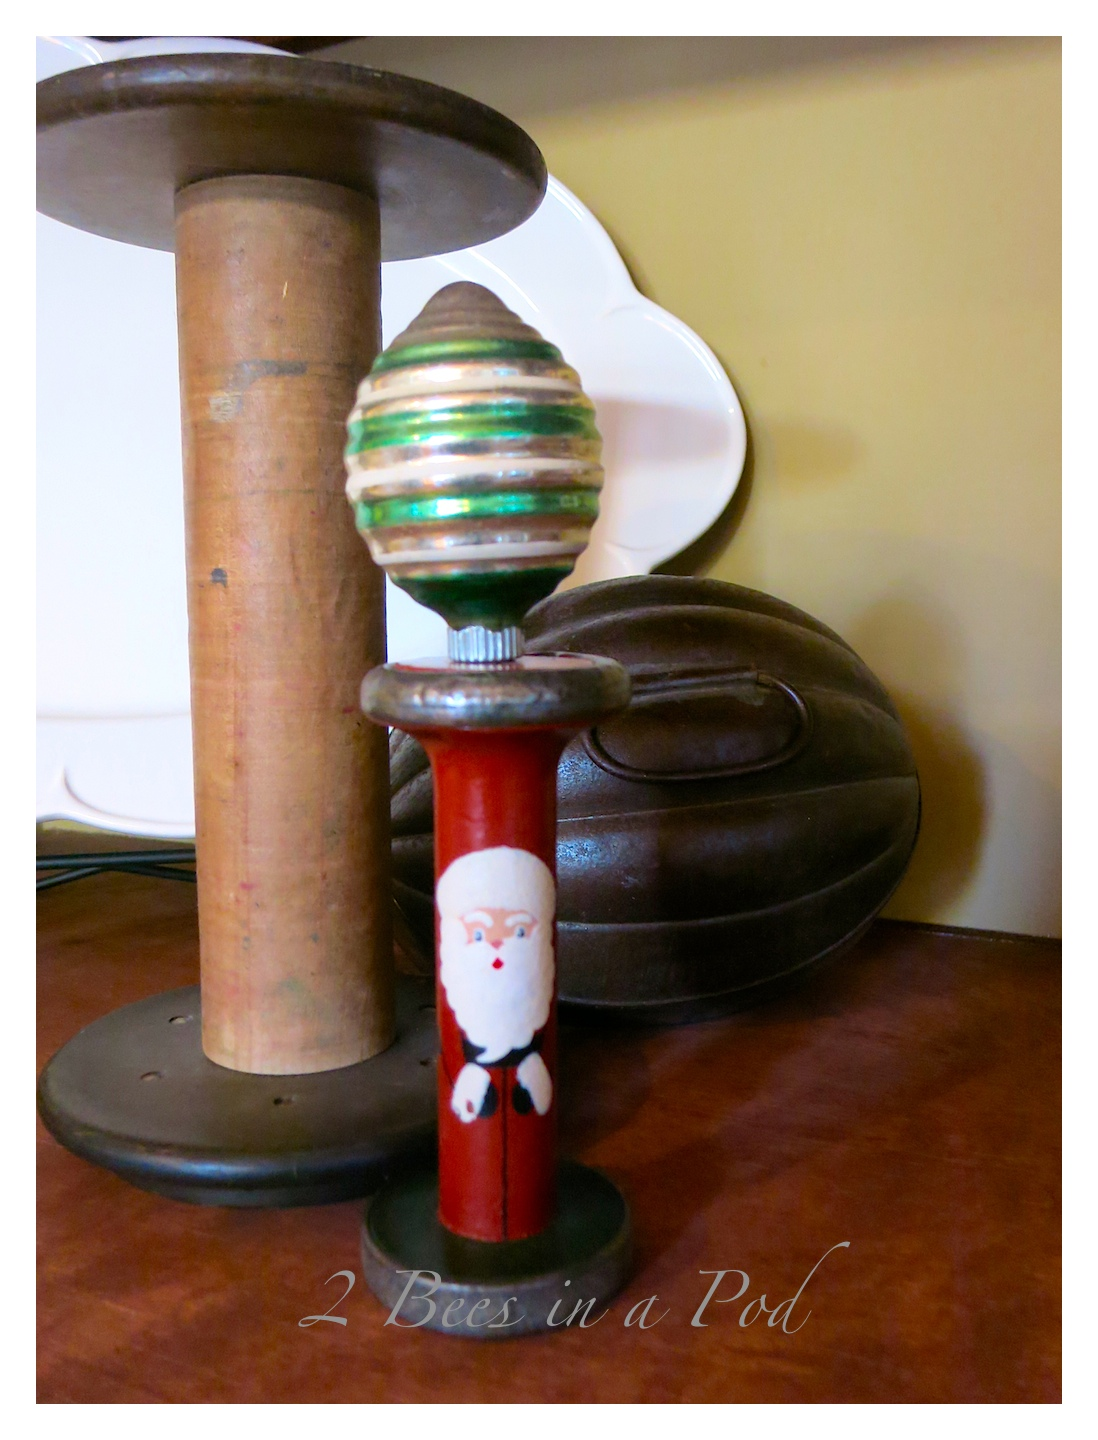 Rustic Christmas - I love the crusty, rusty, chippy and warmth that rustic elements bring to my home for Christmas!The old spools are so warm. I painted the Santa on the miniature spool.